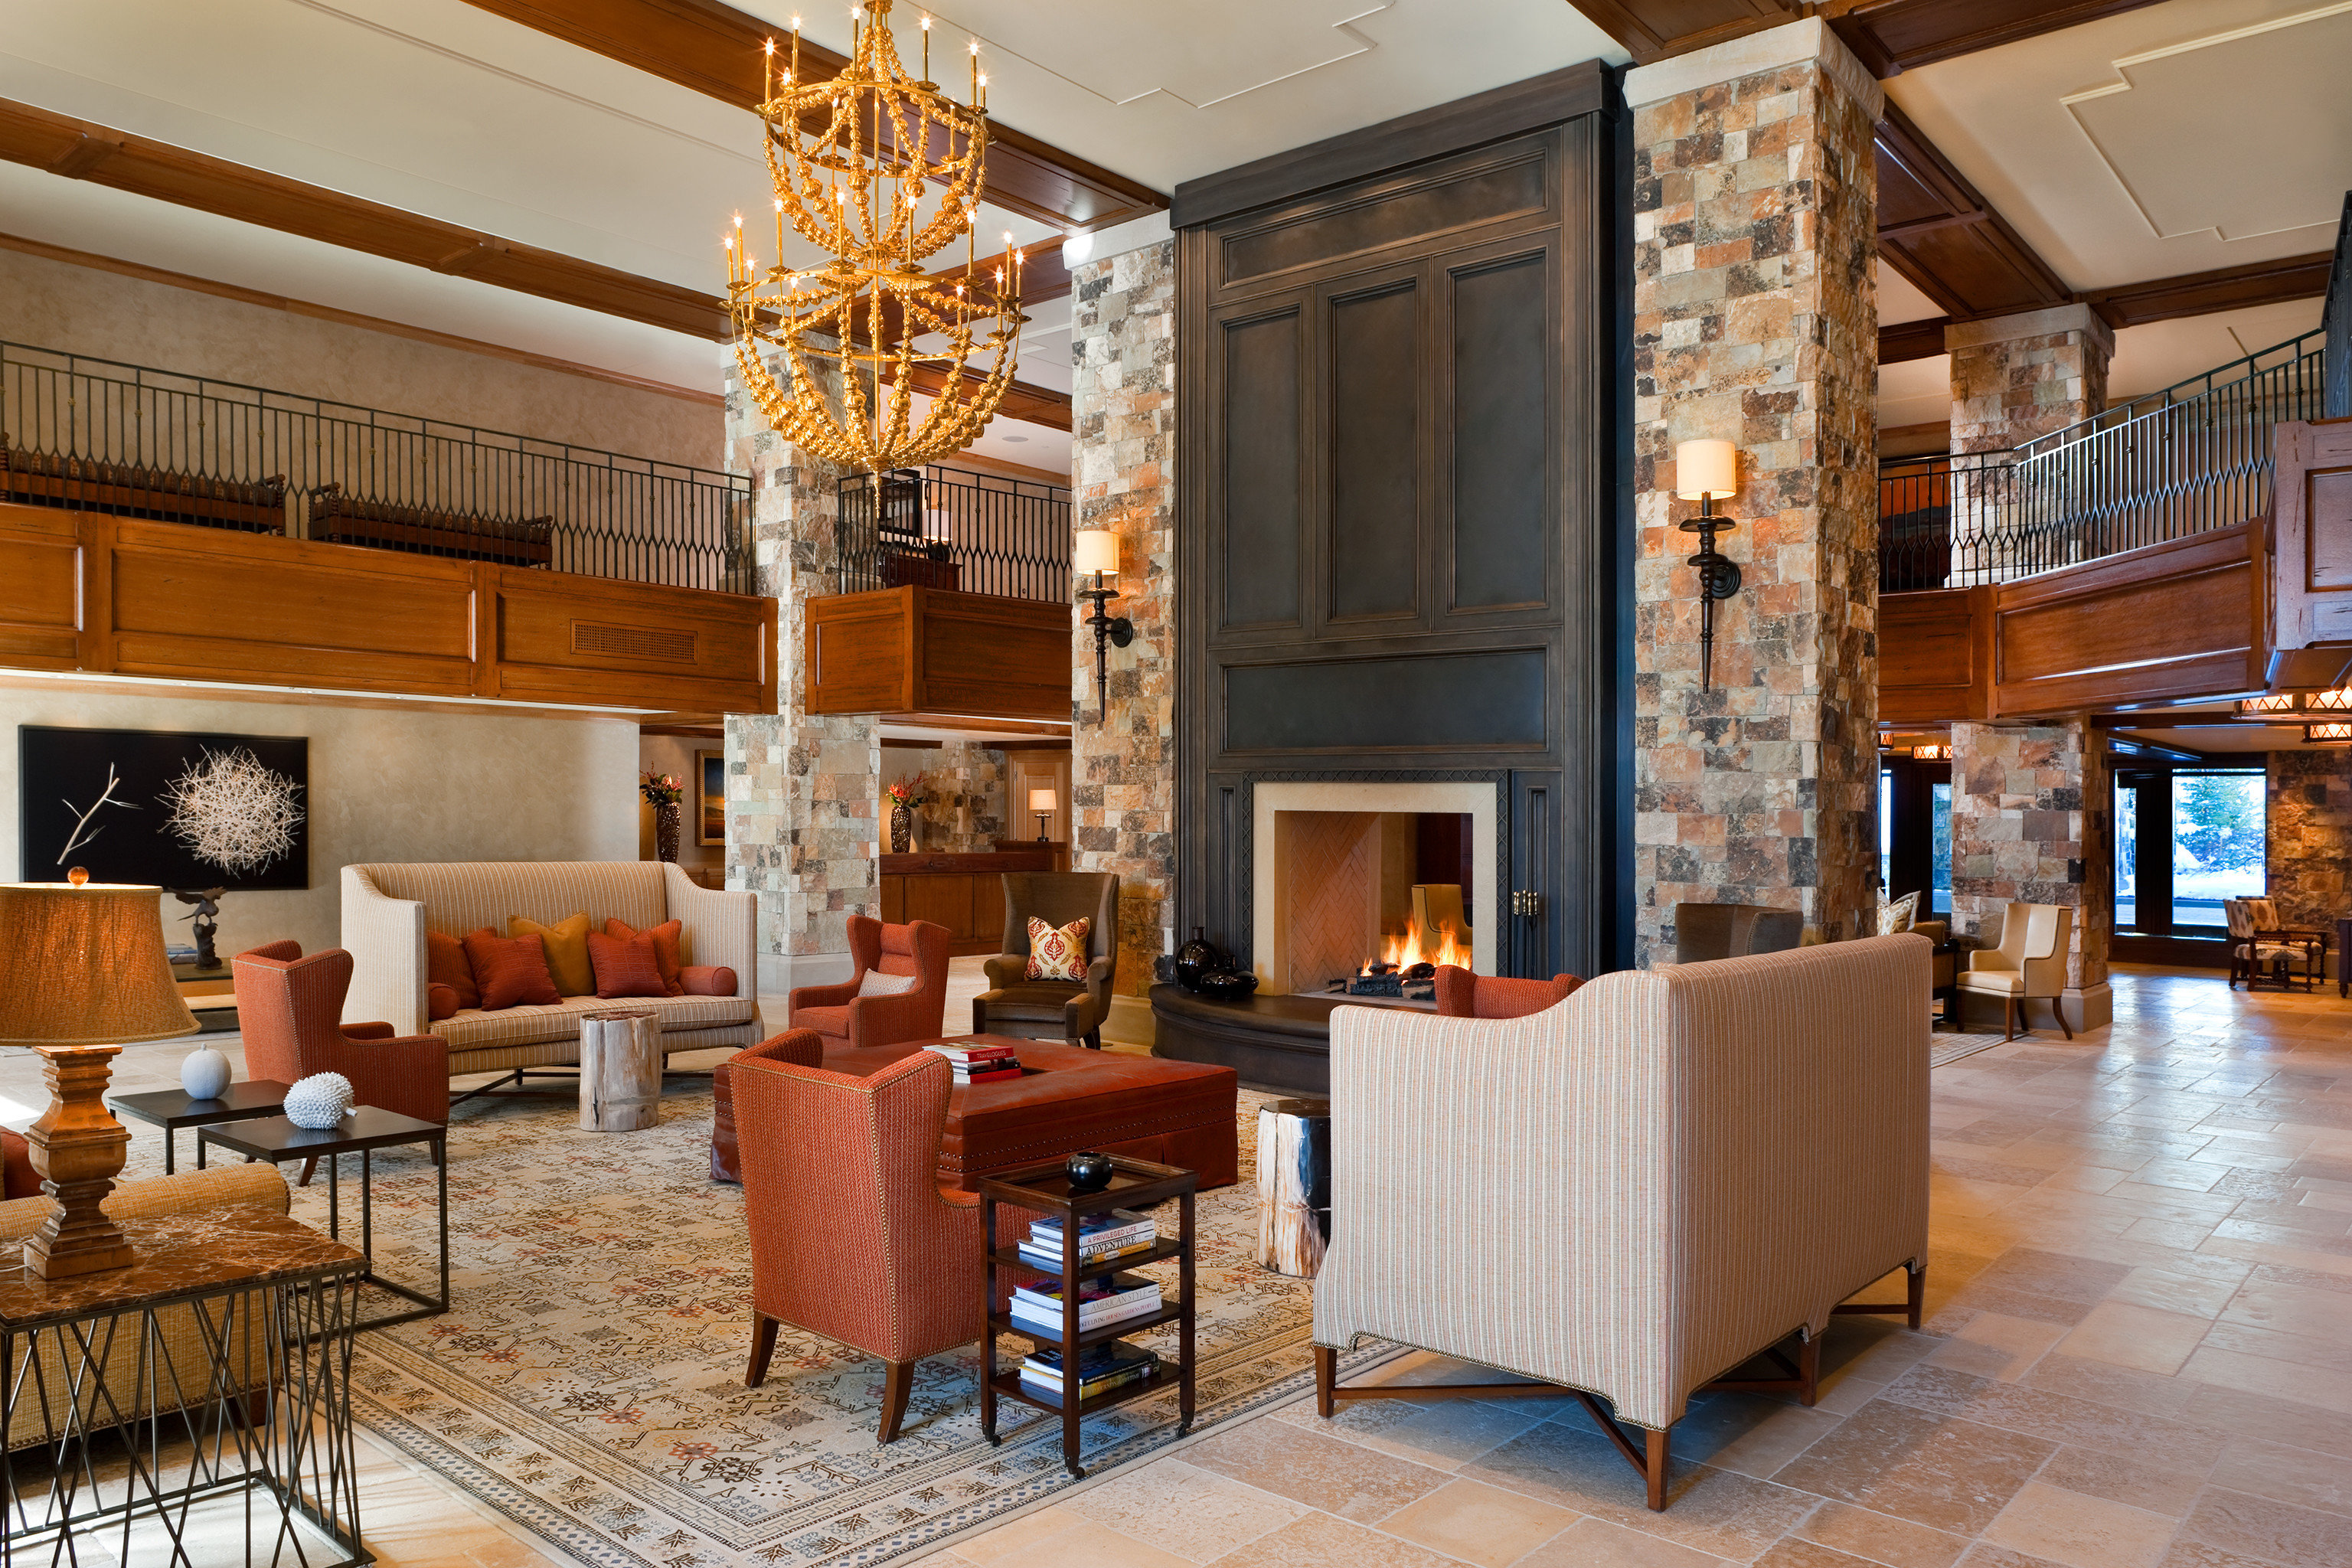 Firepit Fireplace Hip Living Lounge Luxury Modern Trip Ideas floor indoor room chair property living room dining room window estate home ceiling Lobby hardwood interior design cabinetry real estate wood Design condominium furniture wood flooring Kitchen mansion area